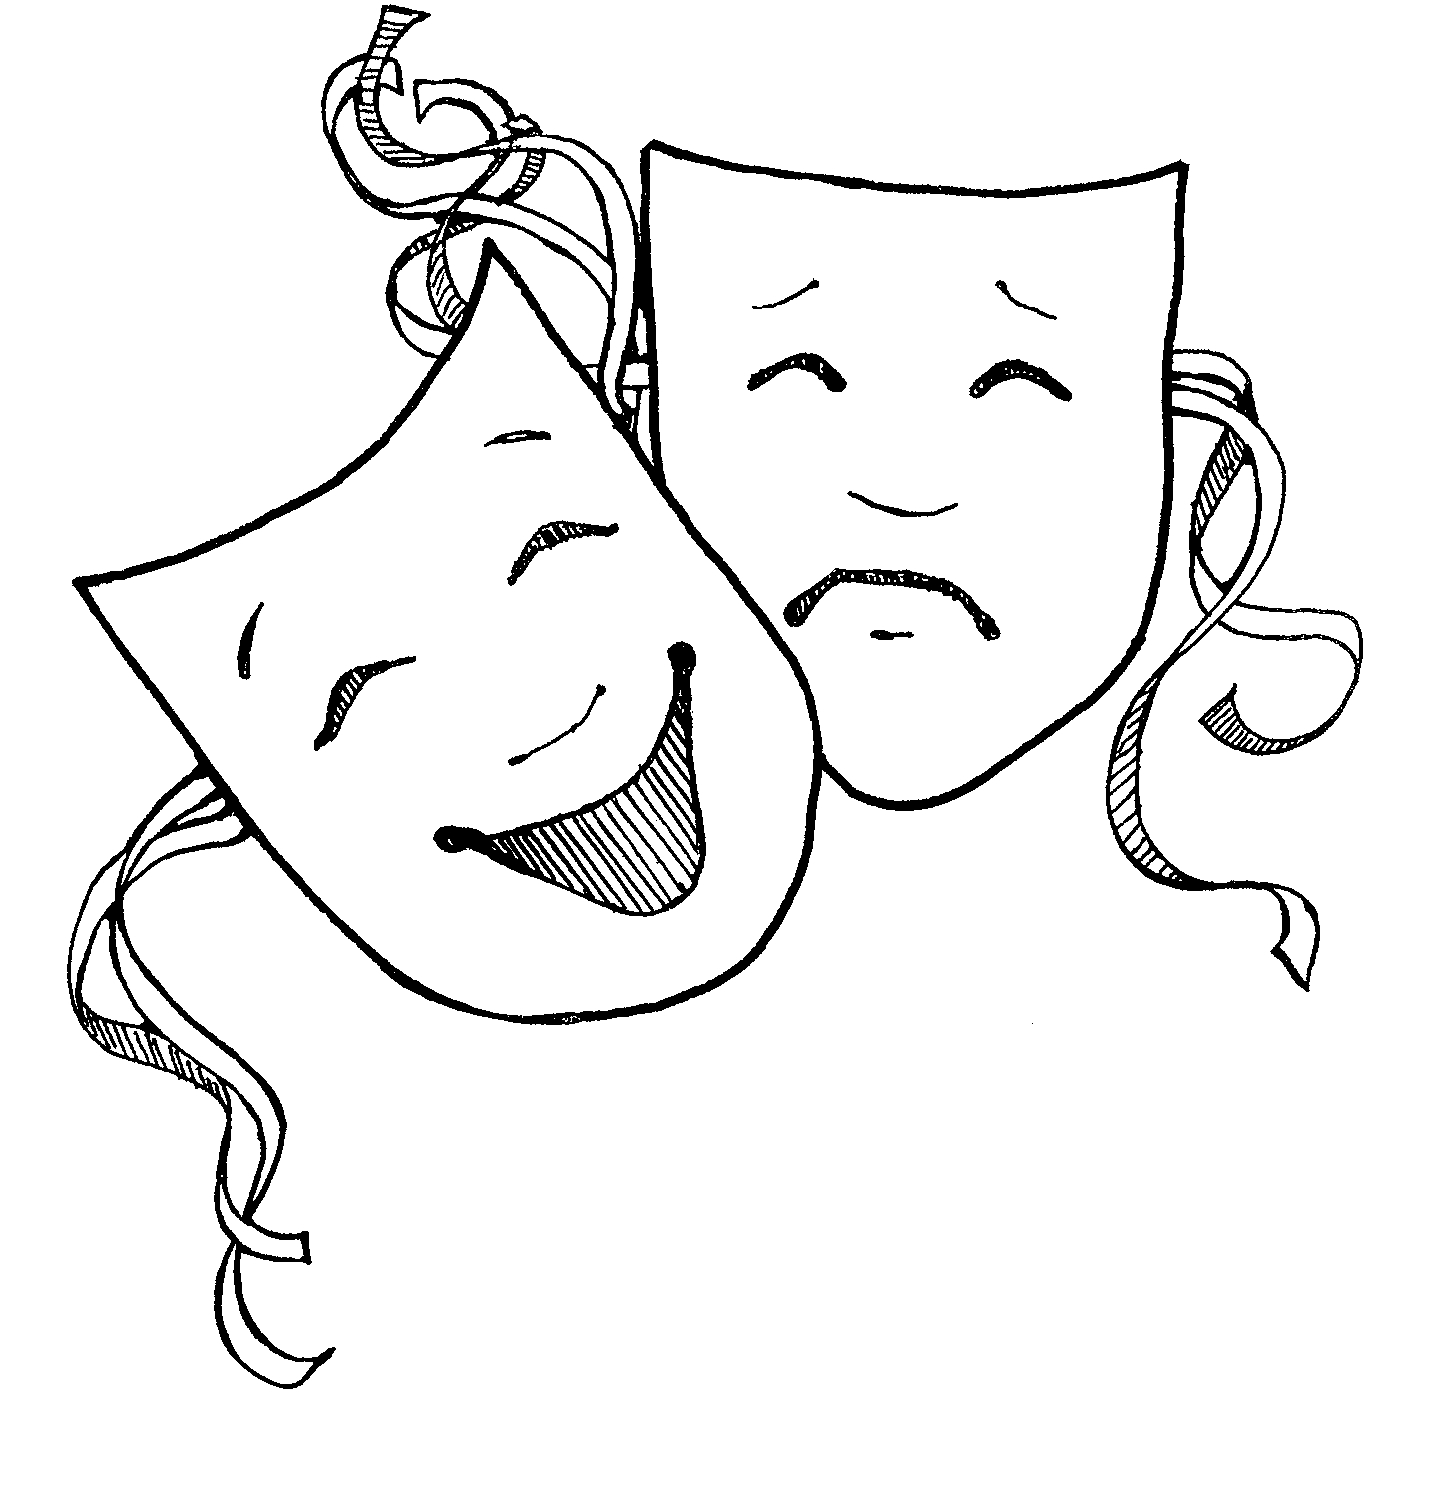 Clipart drama masks free - ClipartFest